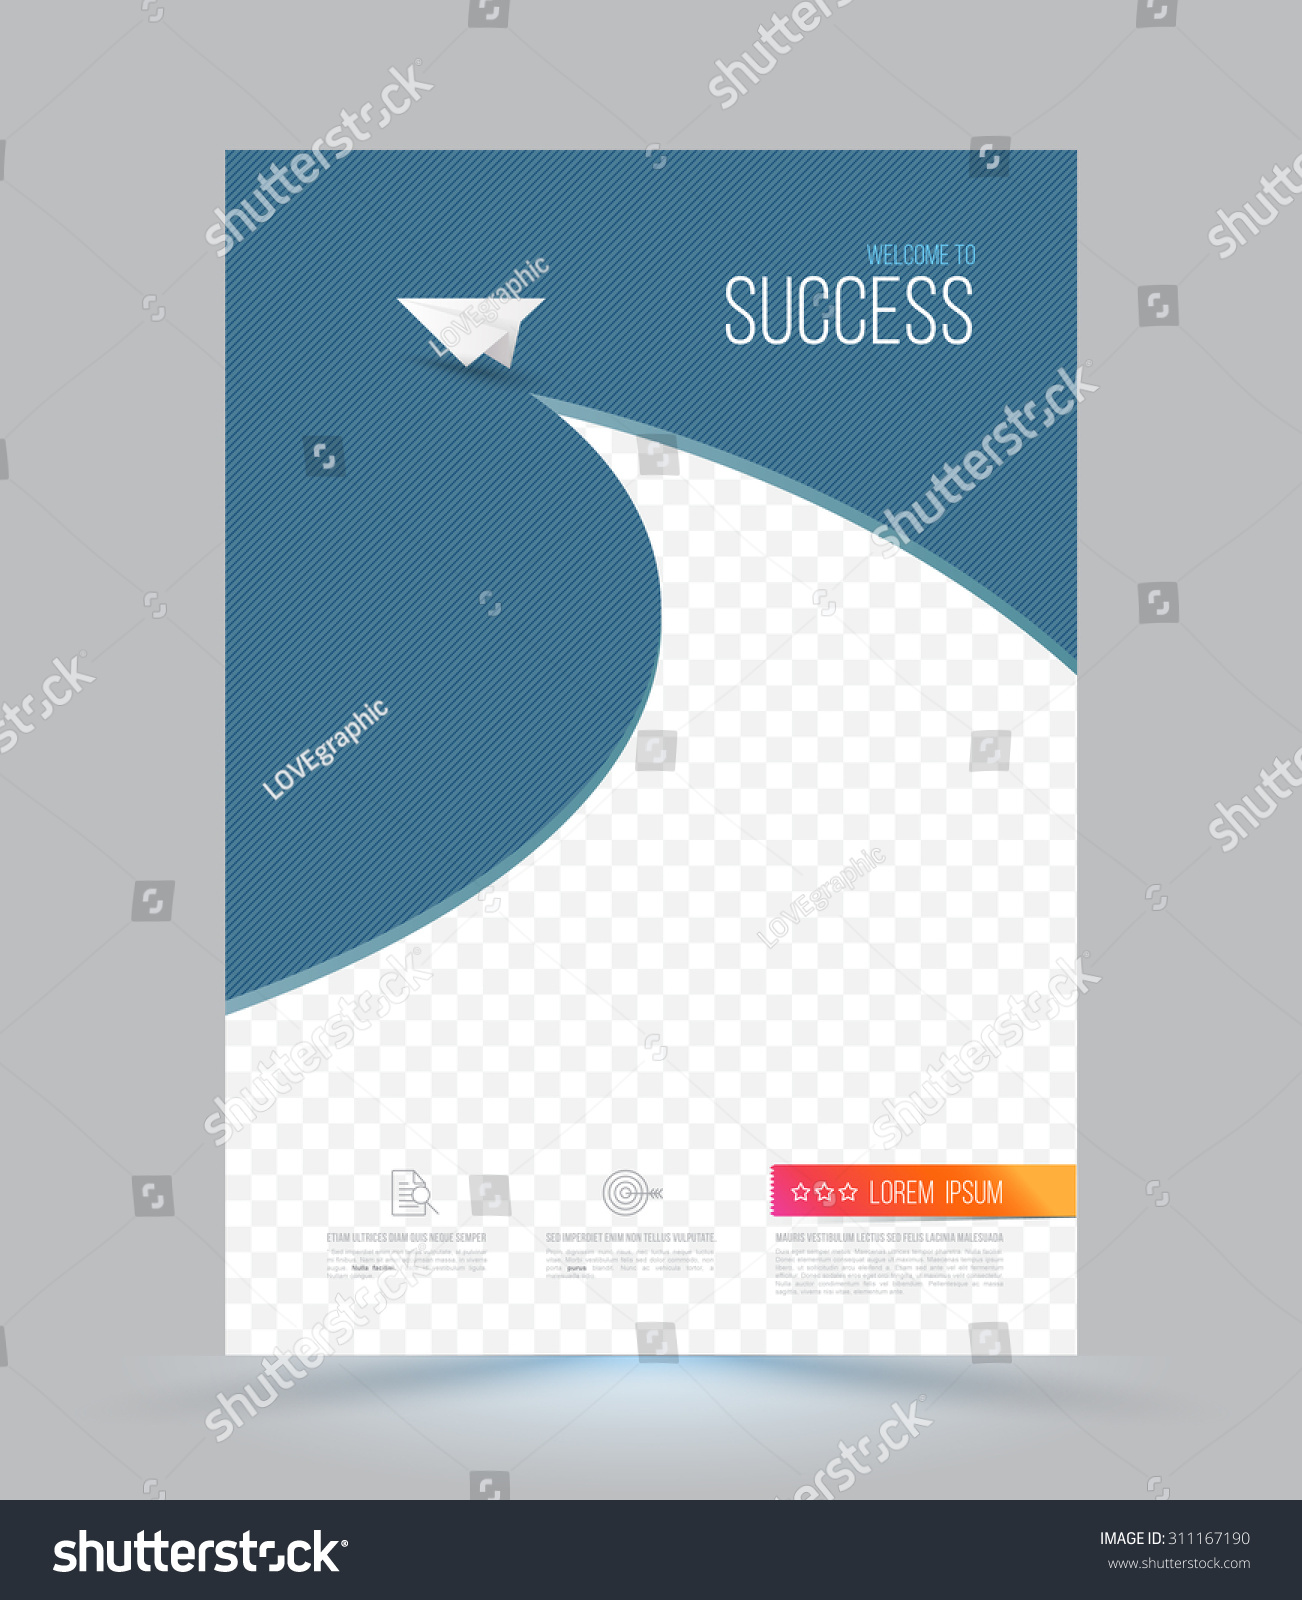 cover page layout template paper airplane stock vector  cover page layout template paper airplane vector illustration can use for leaflet